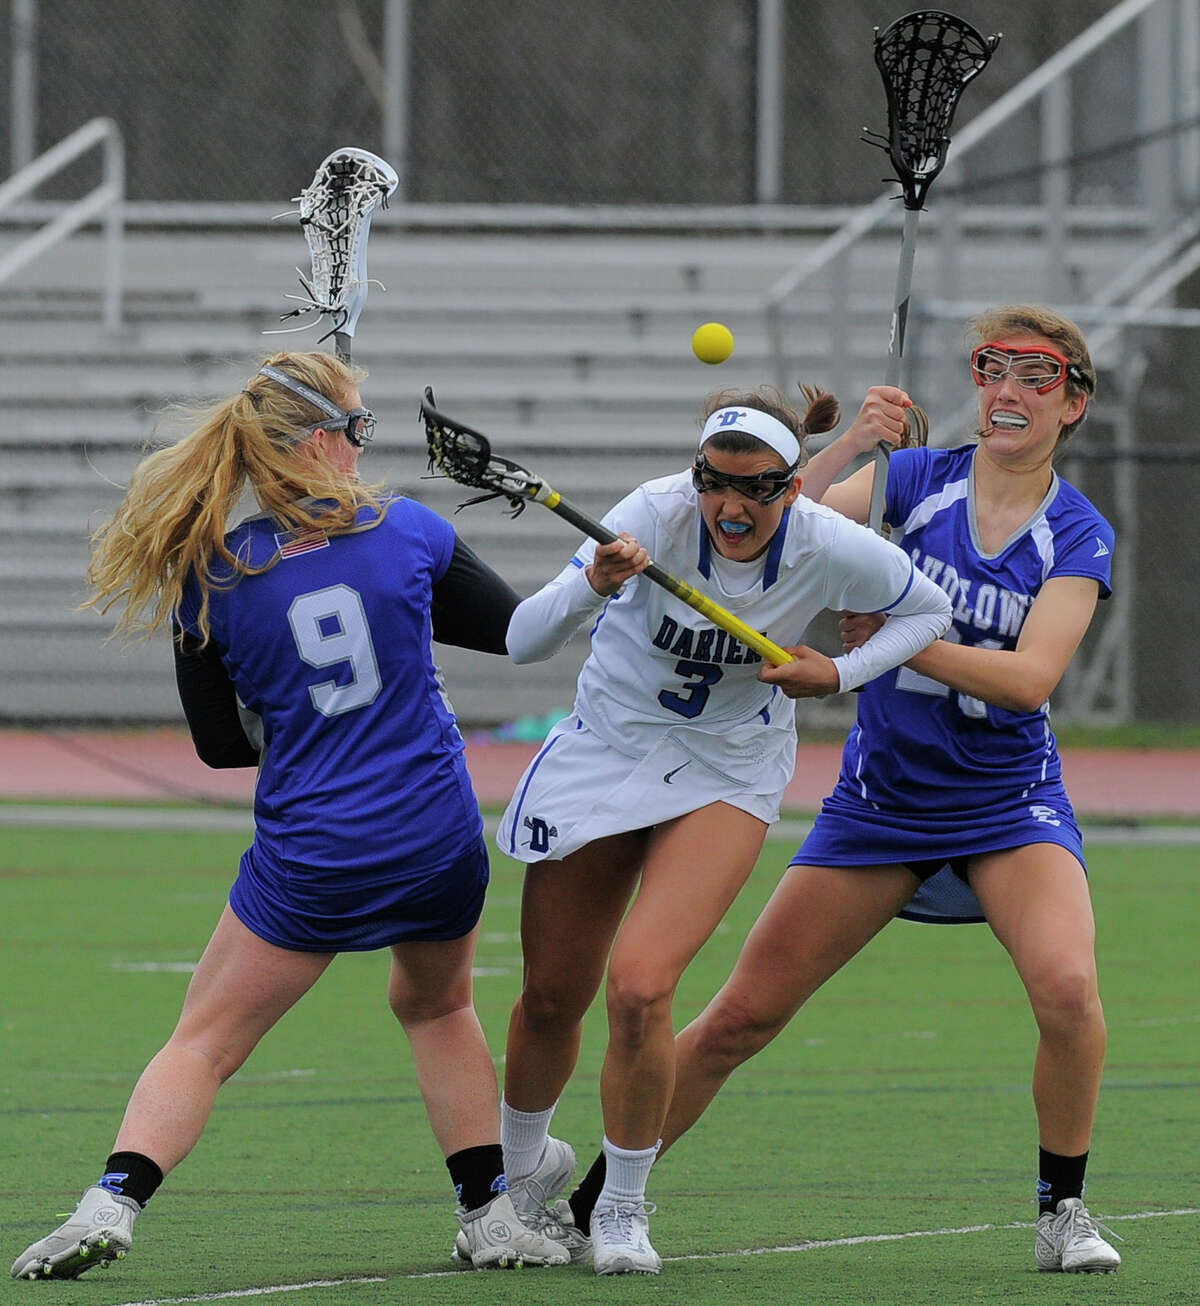 Darien Emma Lesko fights to recover a loose ball between Fairfield Ludlowe Paige Wilkman (9) and Amanda Schramm (21) in the first half of a FCIAC girls lacrosse game at Darien High School on April 7, 2016. Darien defeated Fairfield Ludlowe 19-6.